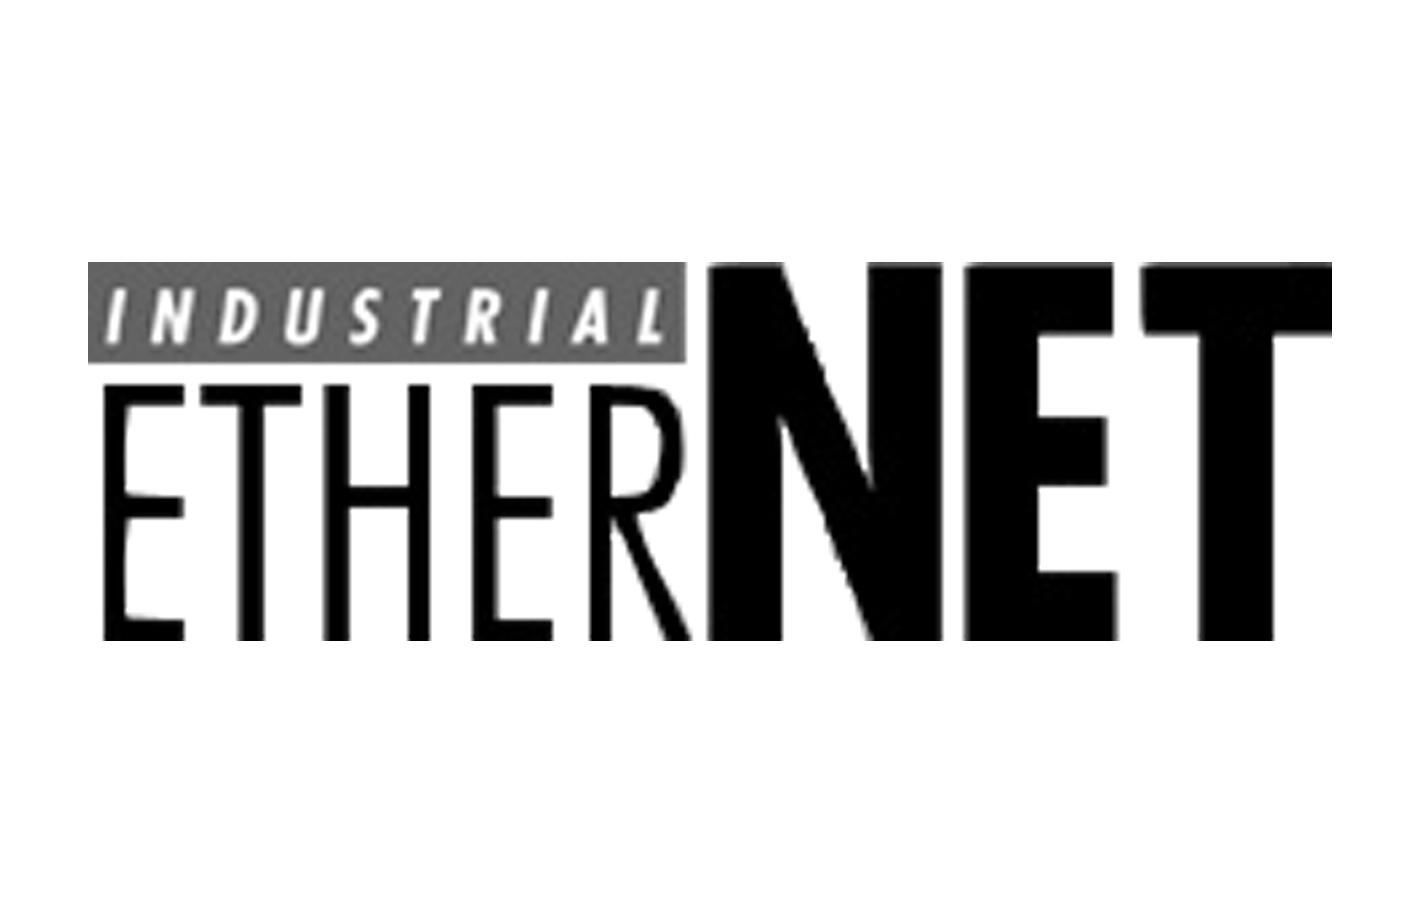 Industrial Ethernet